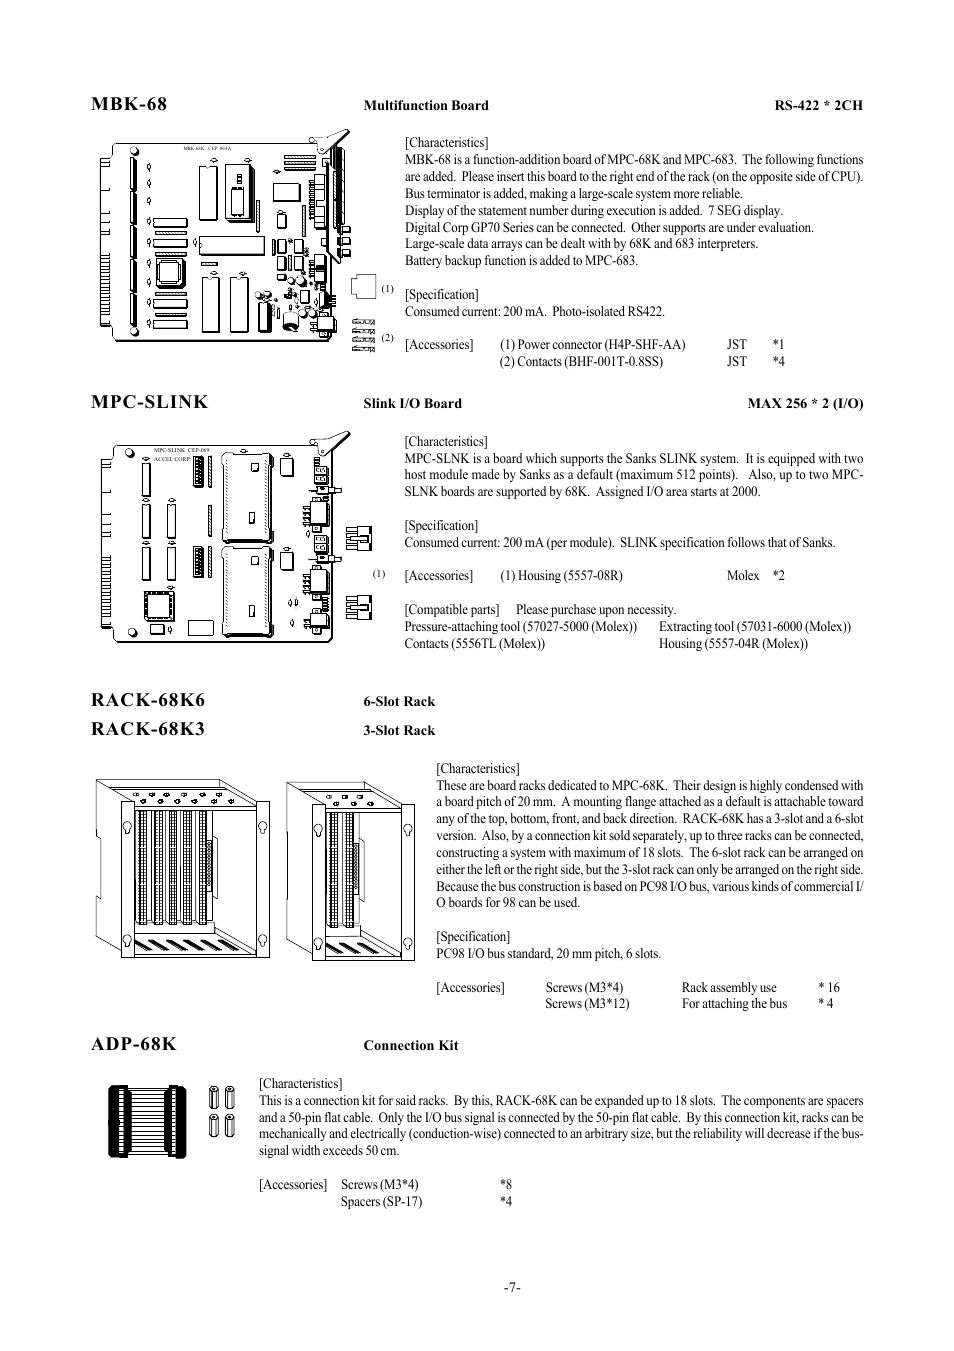 mbk 68 mpc slink rack 68k6 accell mpc lnk user manual page 8 rh manualsdir com mpc user guide mpc 500 user manual